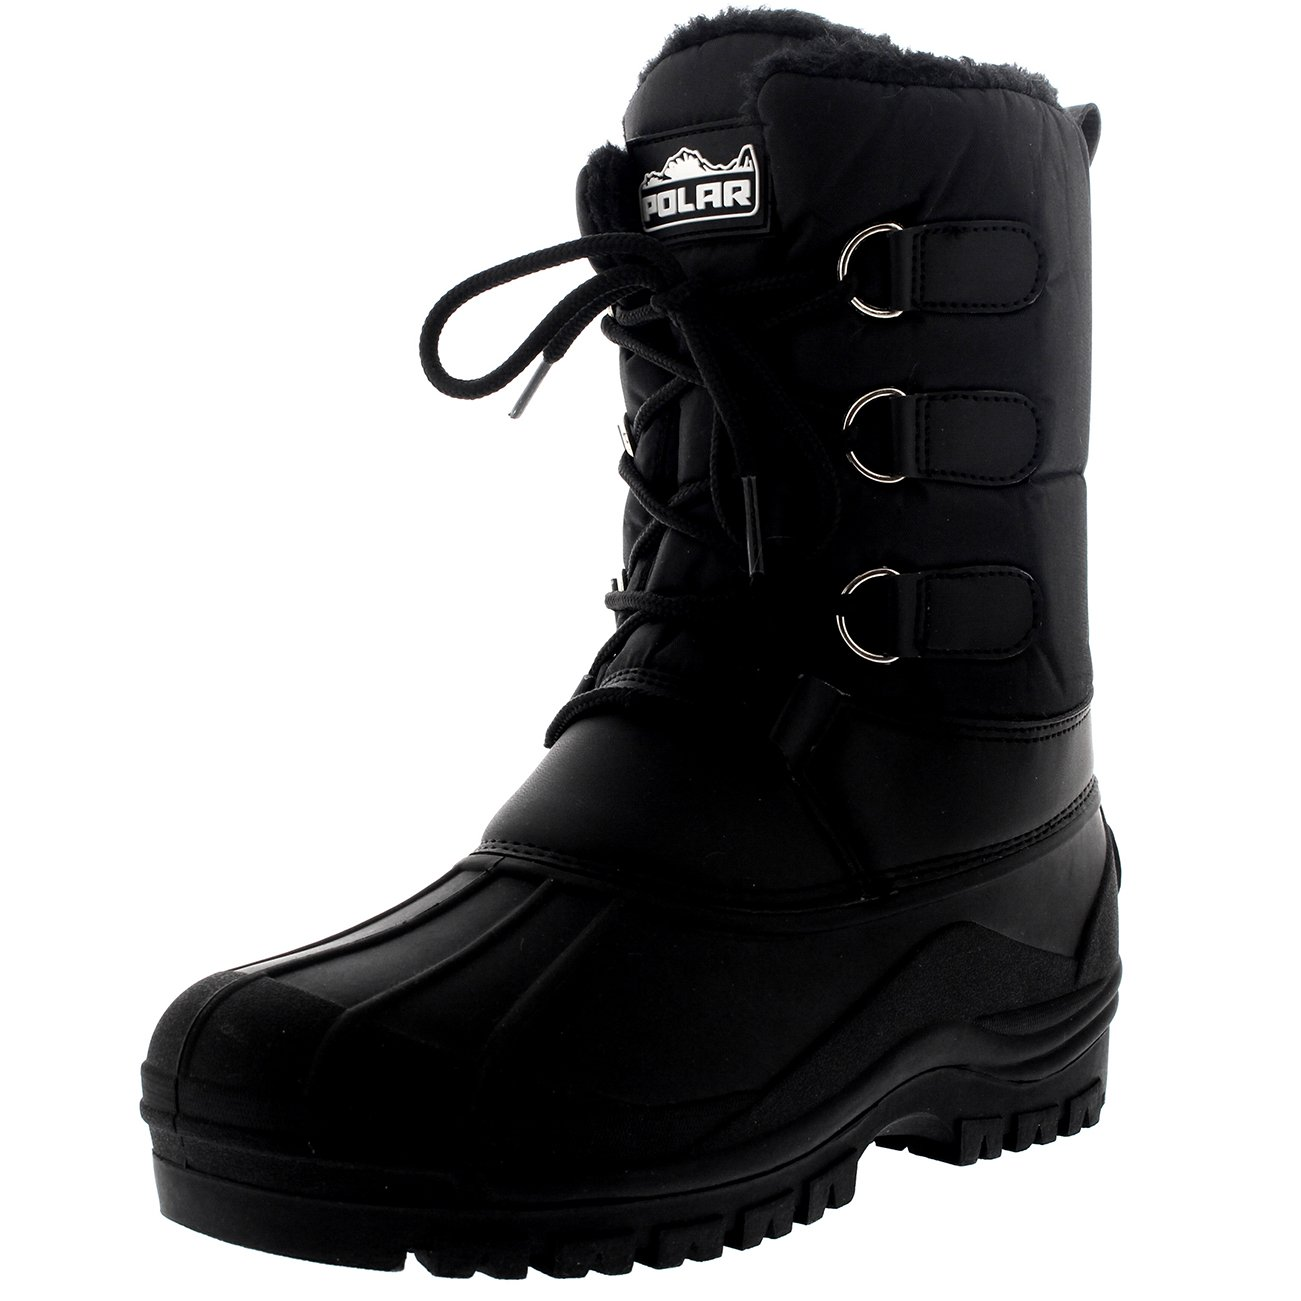 Polar Products Womens Hiking Duck Winter Walking Mid Calf Muck Thermal Quilted Boots - Black - US7/EU38 - YC0335